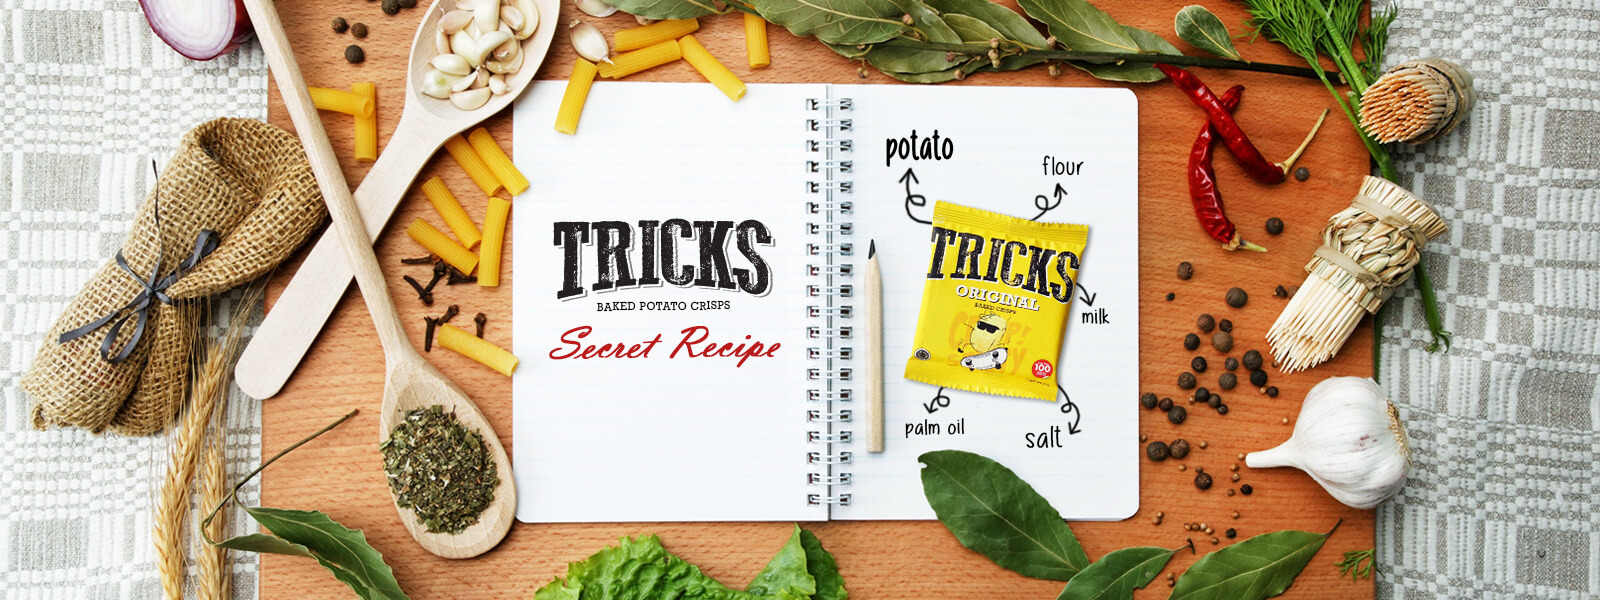 Tricks Baked Potato Crisps